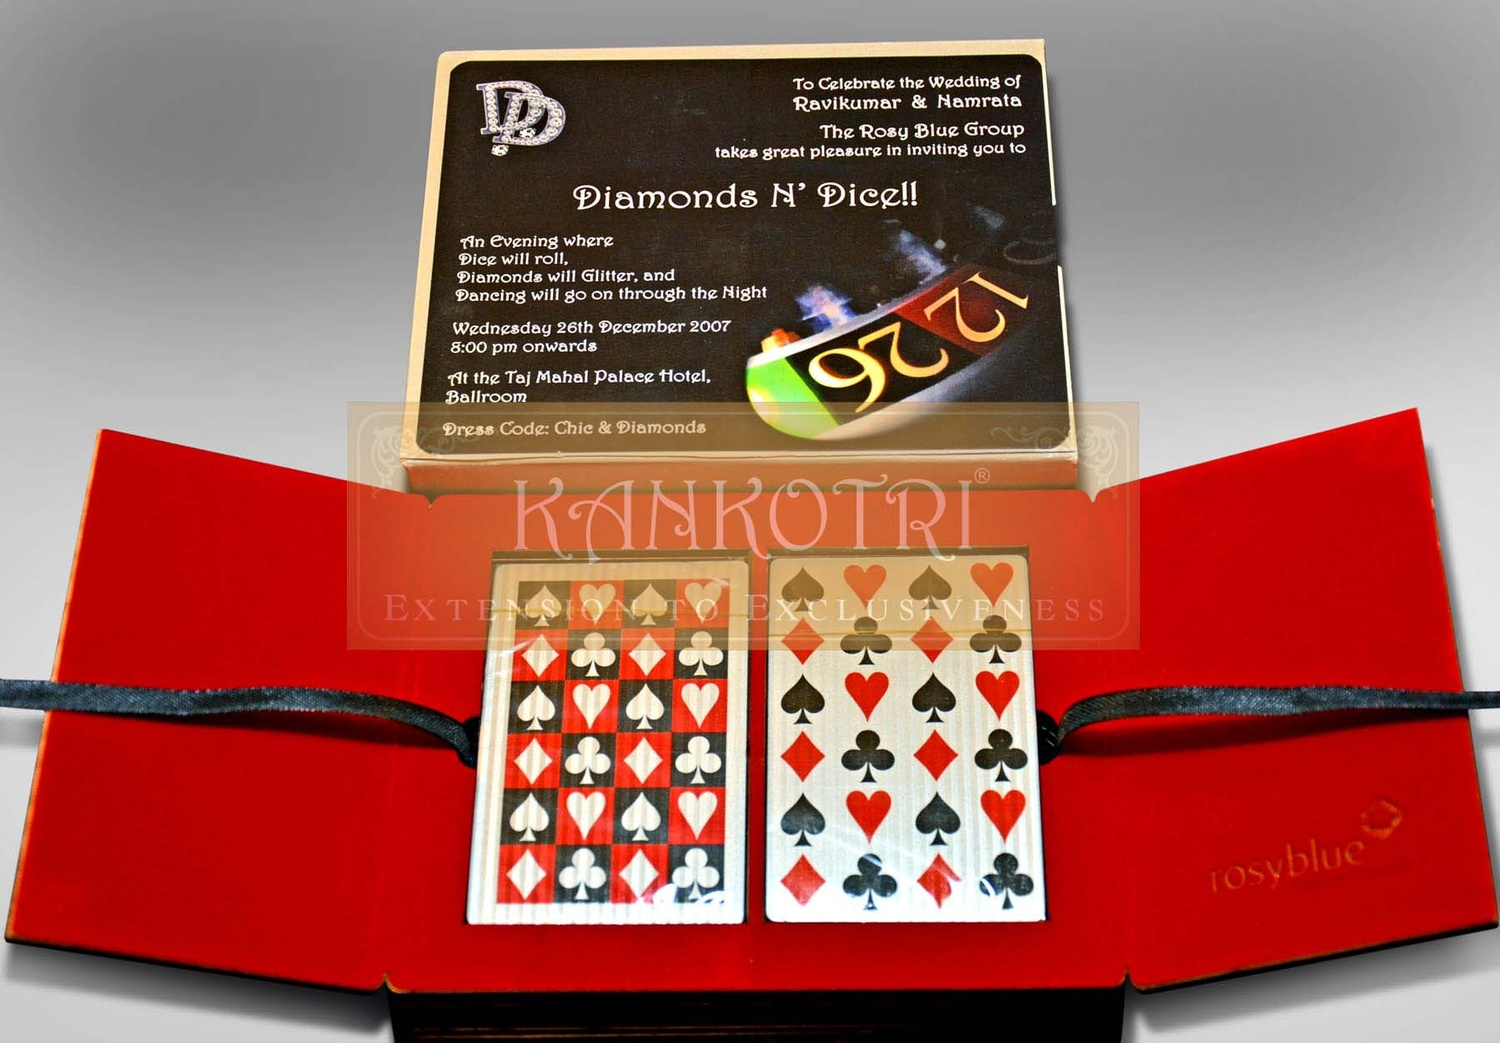 Kankotri invites wedding invitation card in mumbai weddingz overview stopboris Choice Image